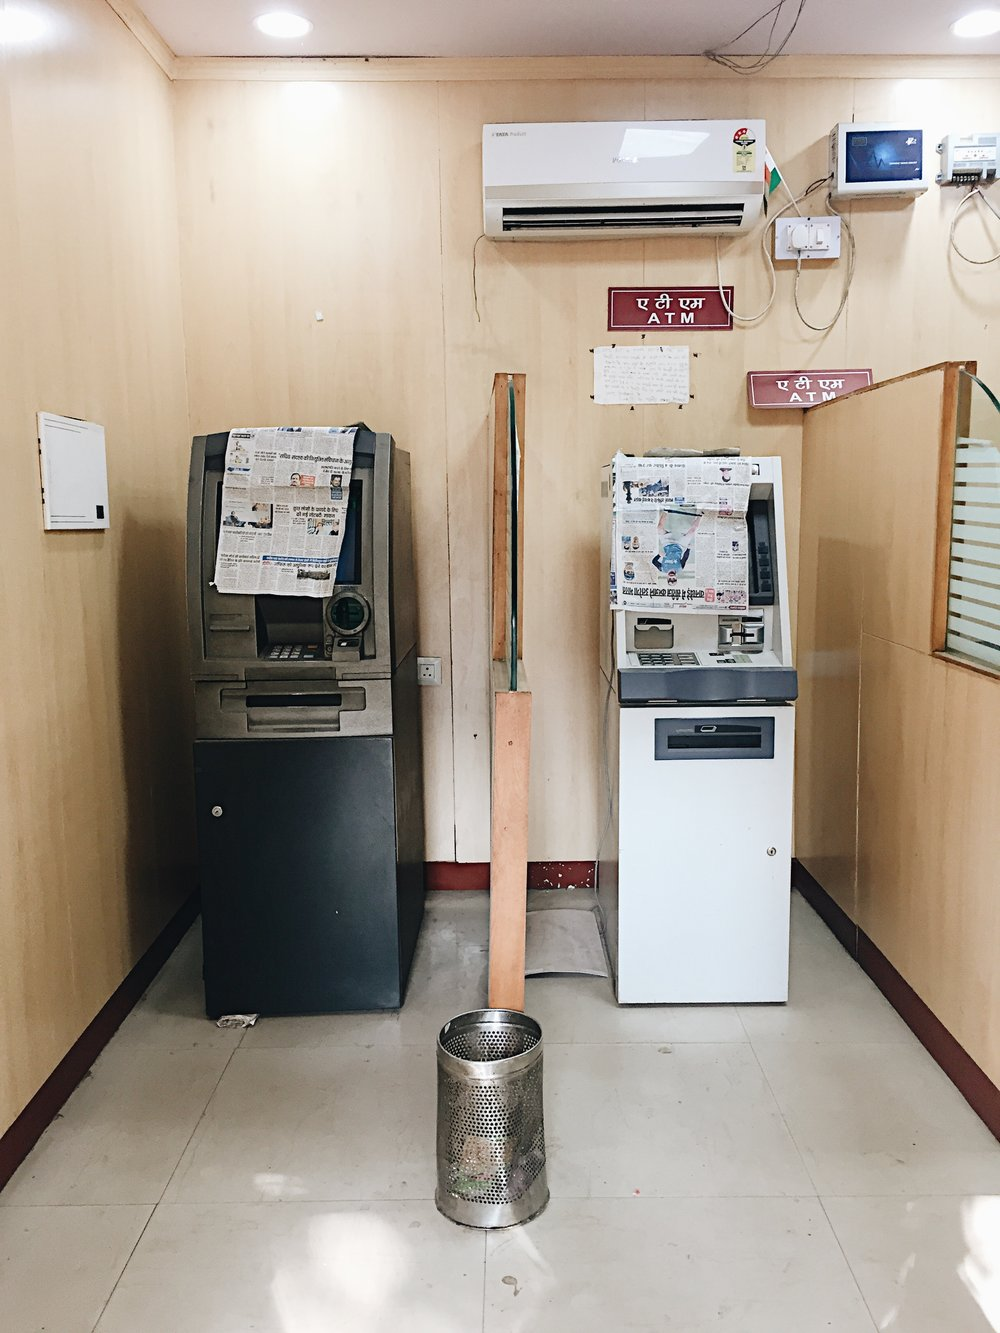 Most ATMs looked like this. Disabled and empty of cash.